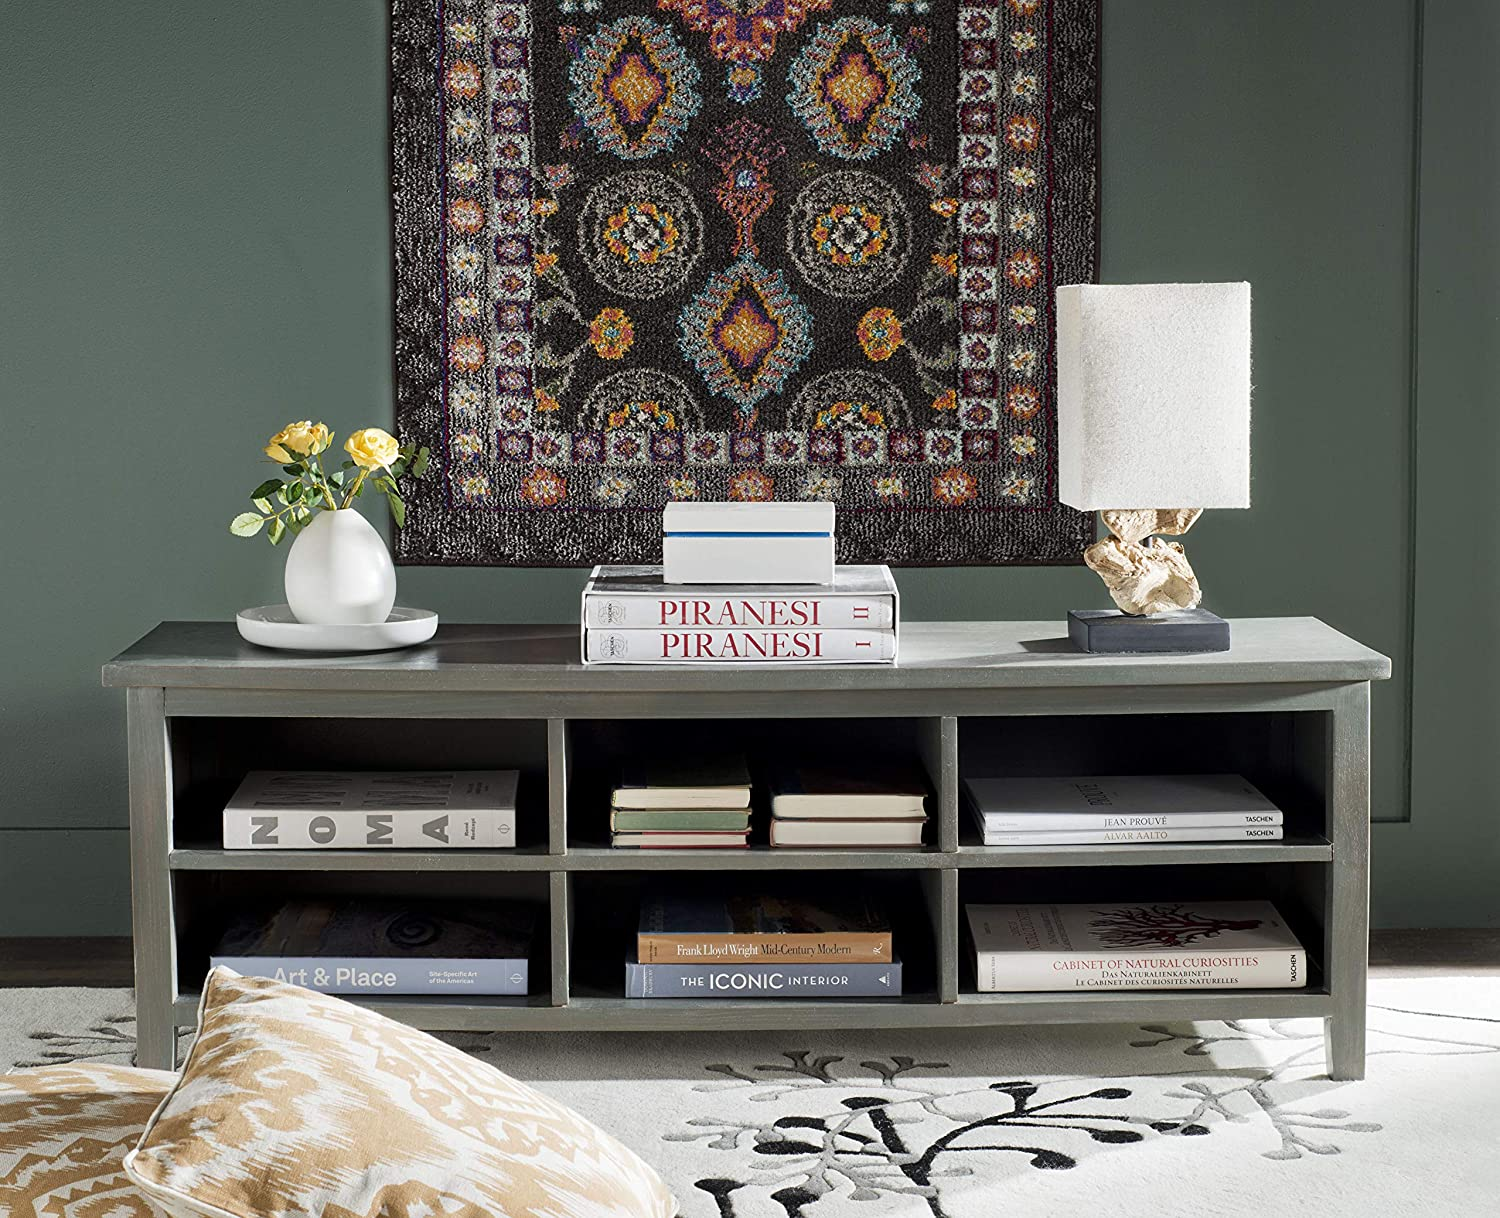 Safavieh American Homes Collection Sadie Low Bookshelf, French Grey